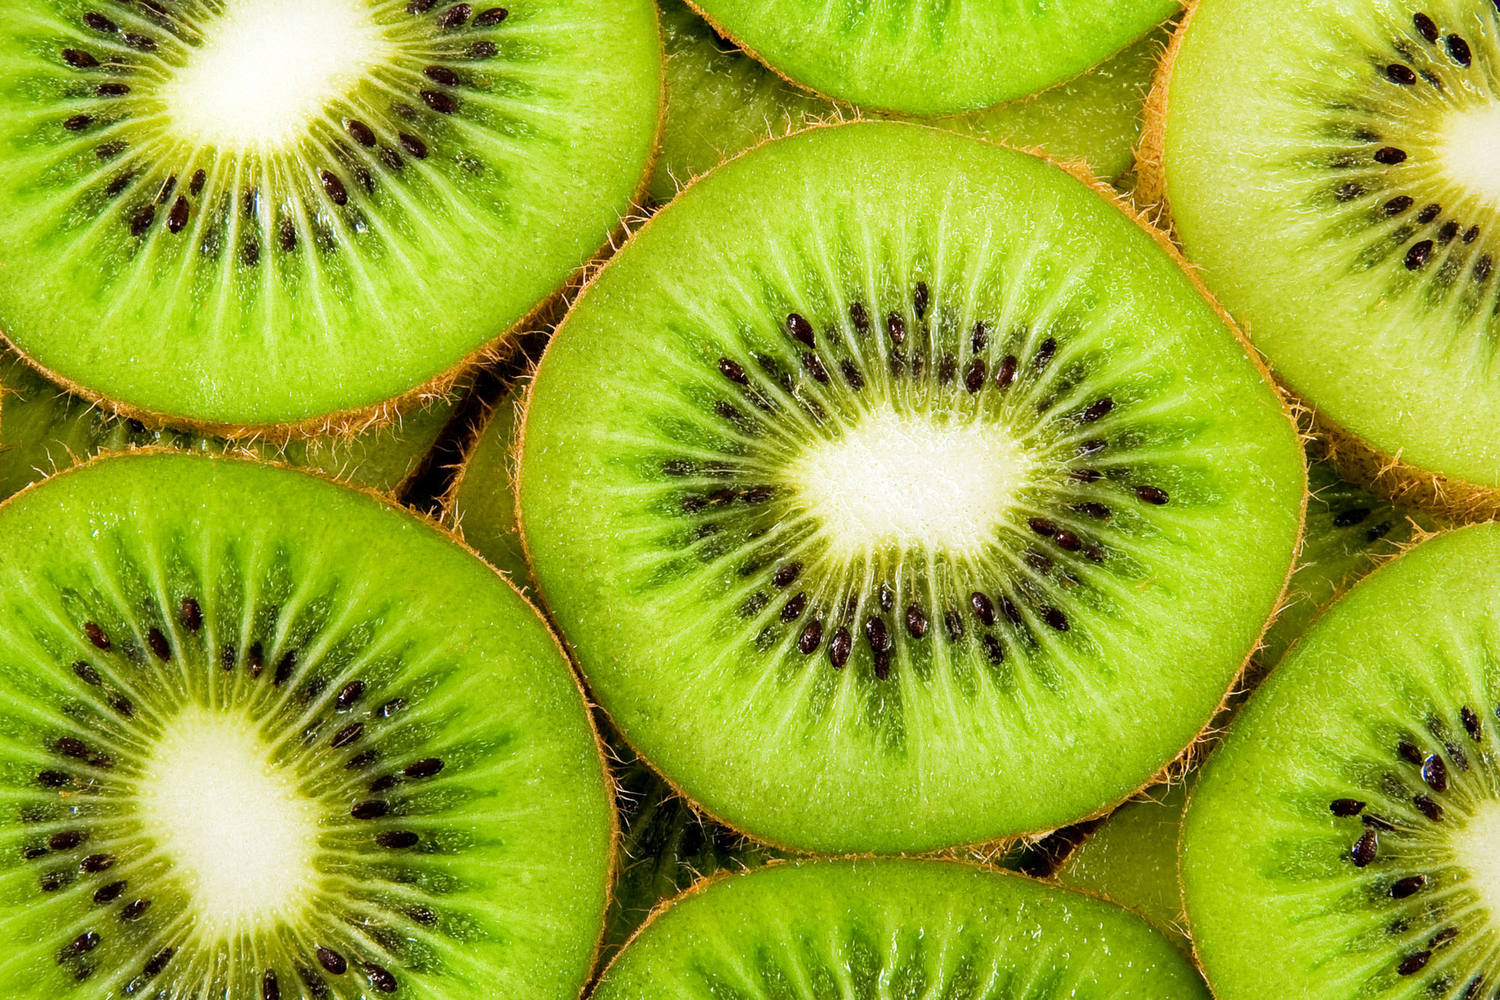 Kiwifruit green 6 pcs piece 3